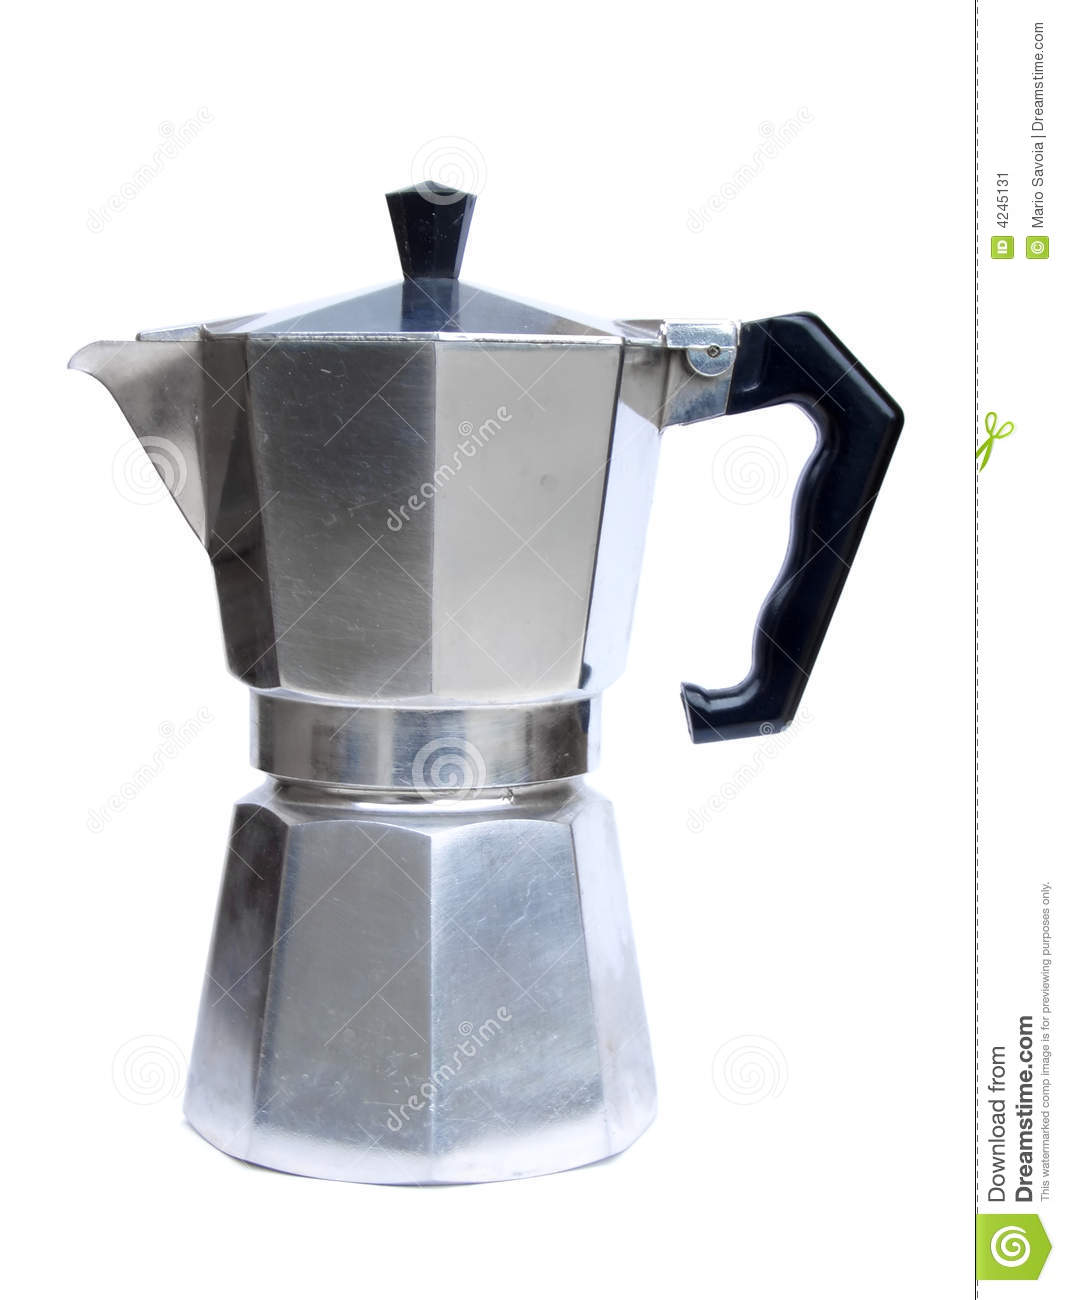 Italian Coffee Maker Stuck : Italian Coffee Maker Stock Photo CartoonDealer.com #37389300